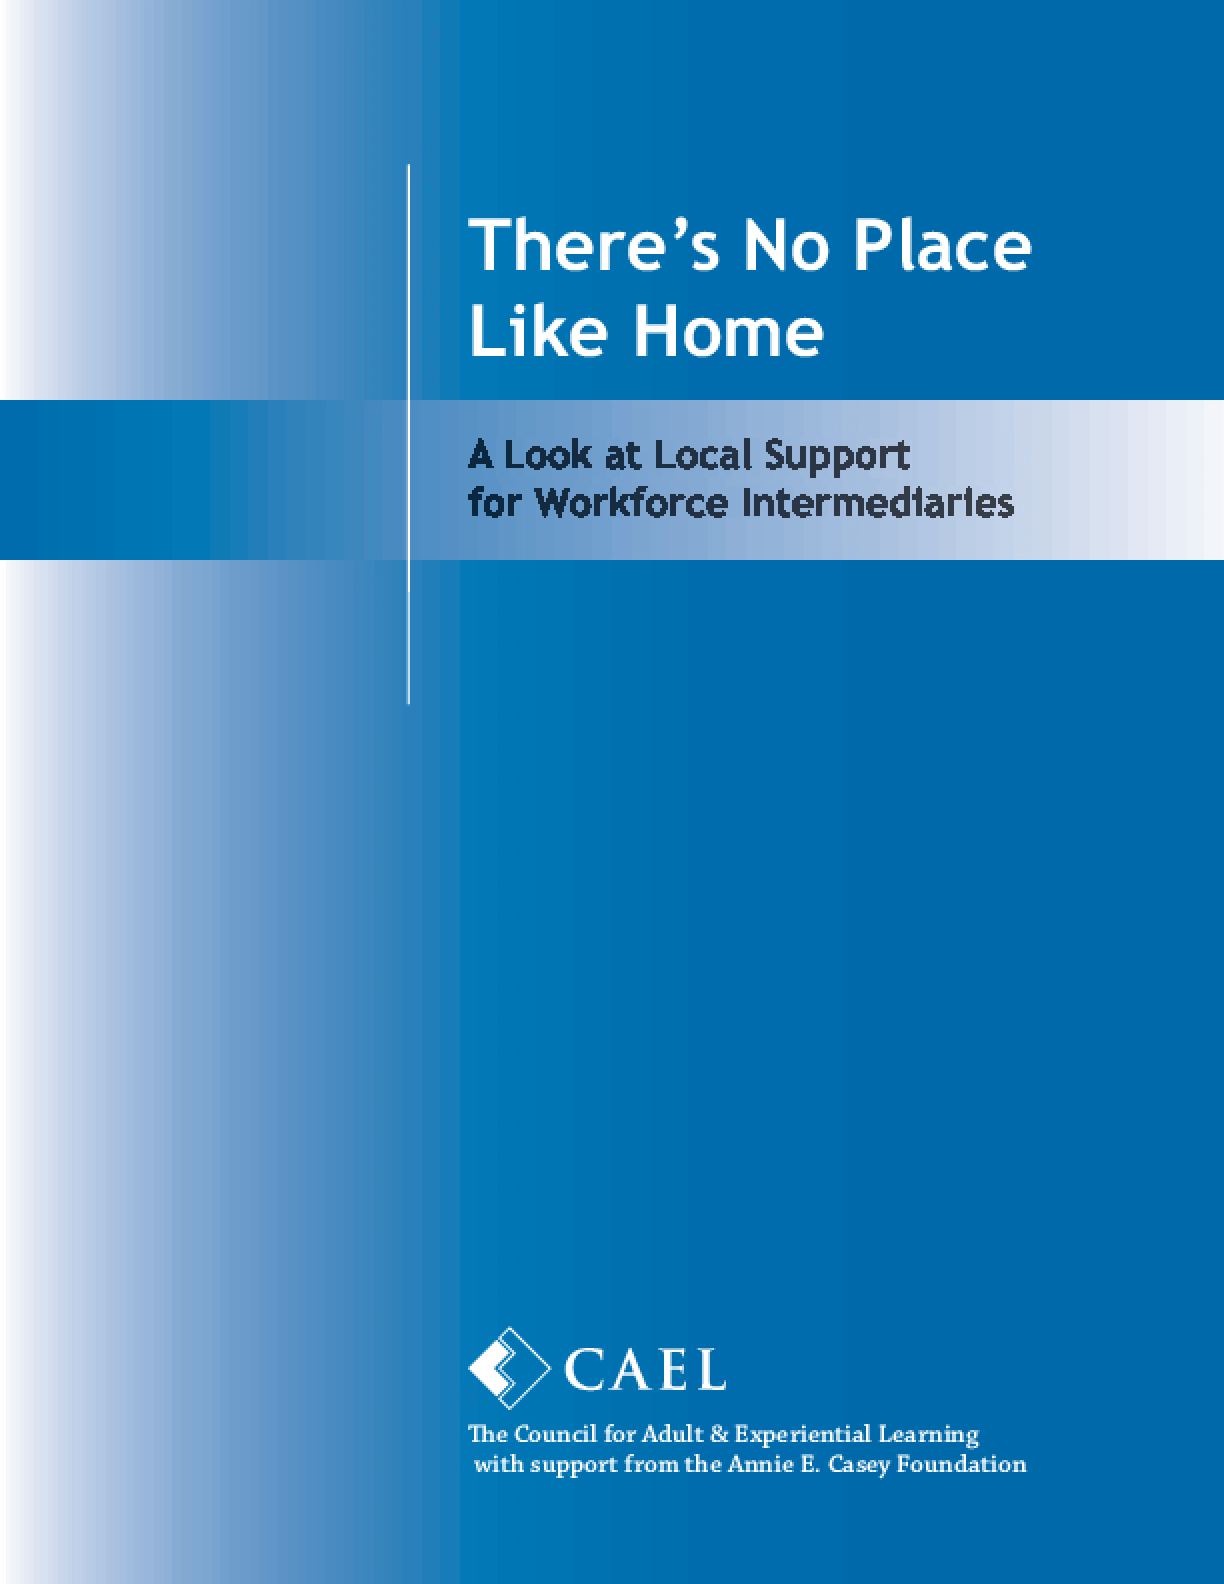 There's No Place Like Home: A Look at Local Support Models for Workforce Intermediaries